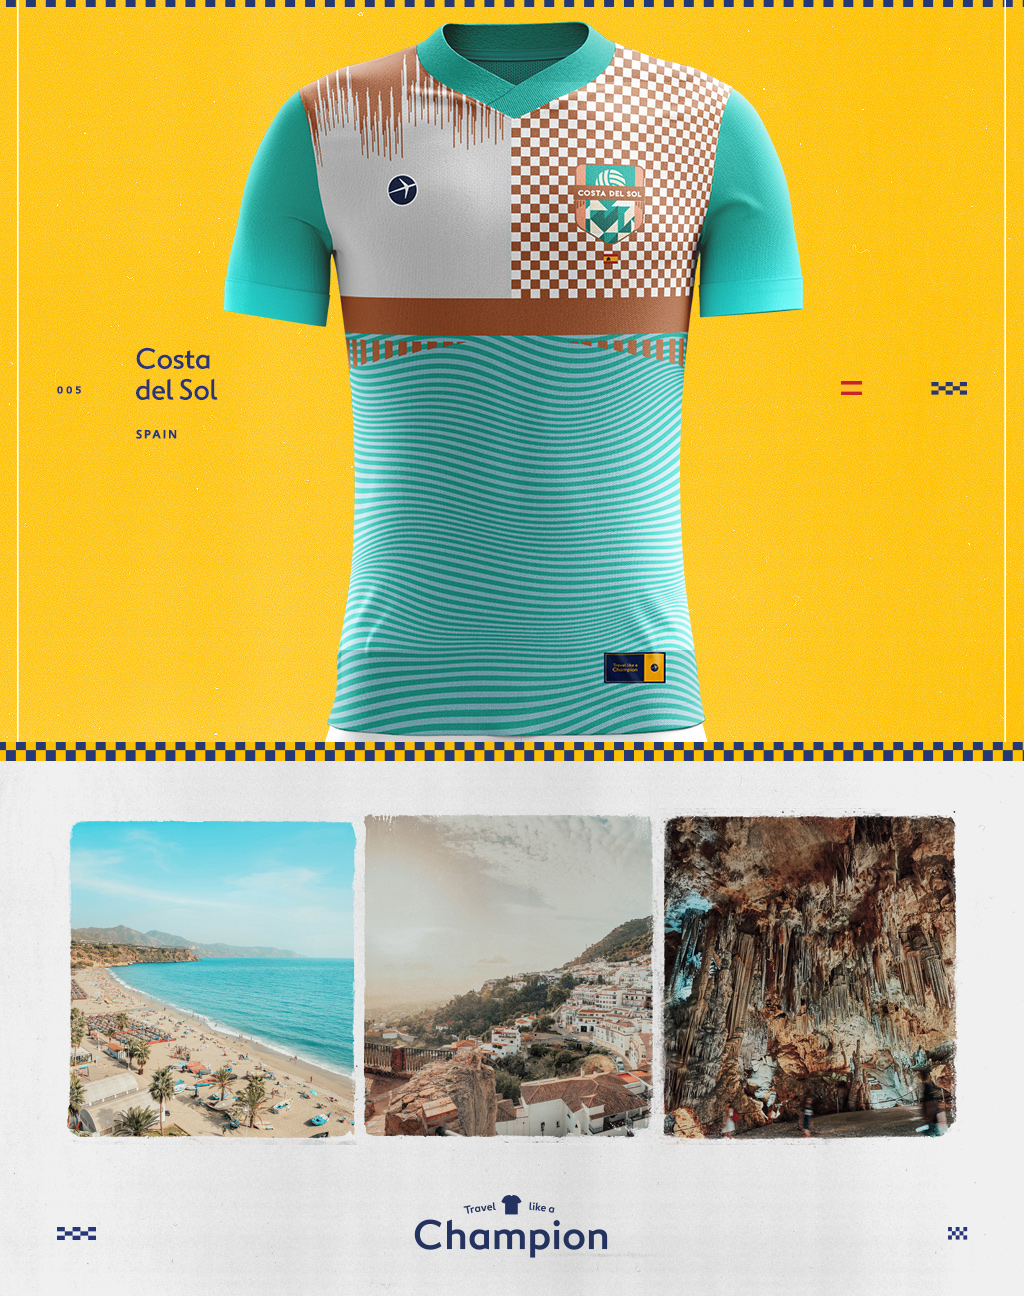 images of costa del sol and a soccer jersey design inspired by them